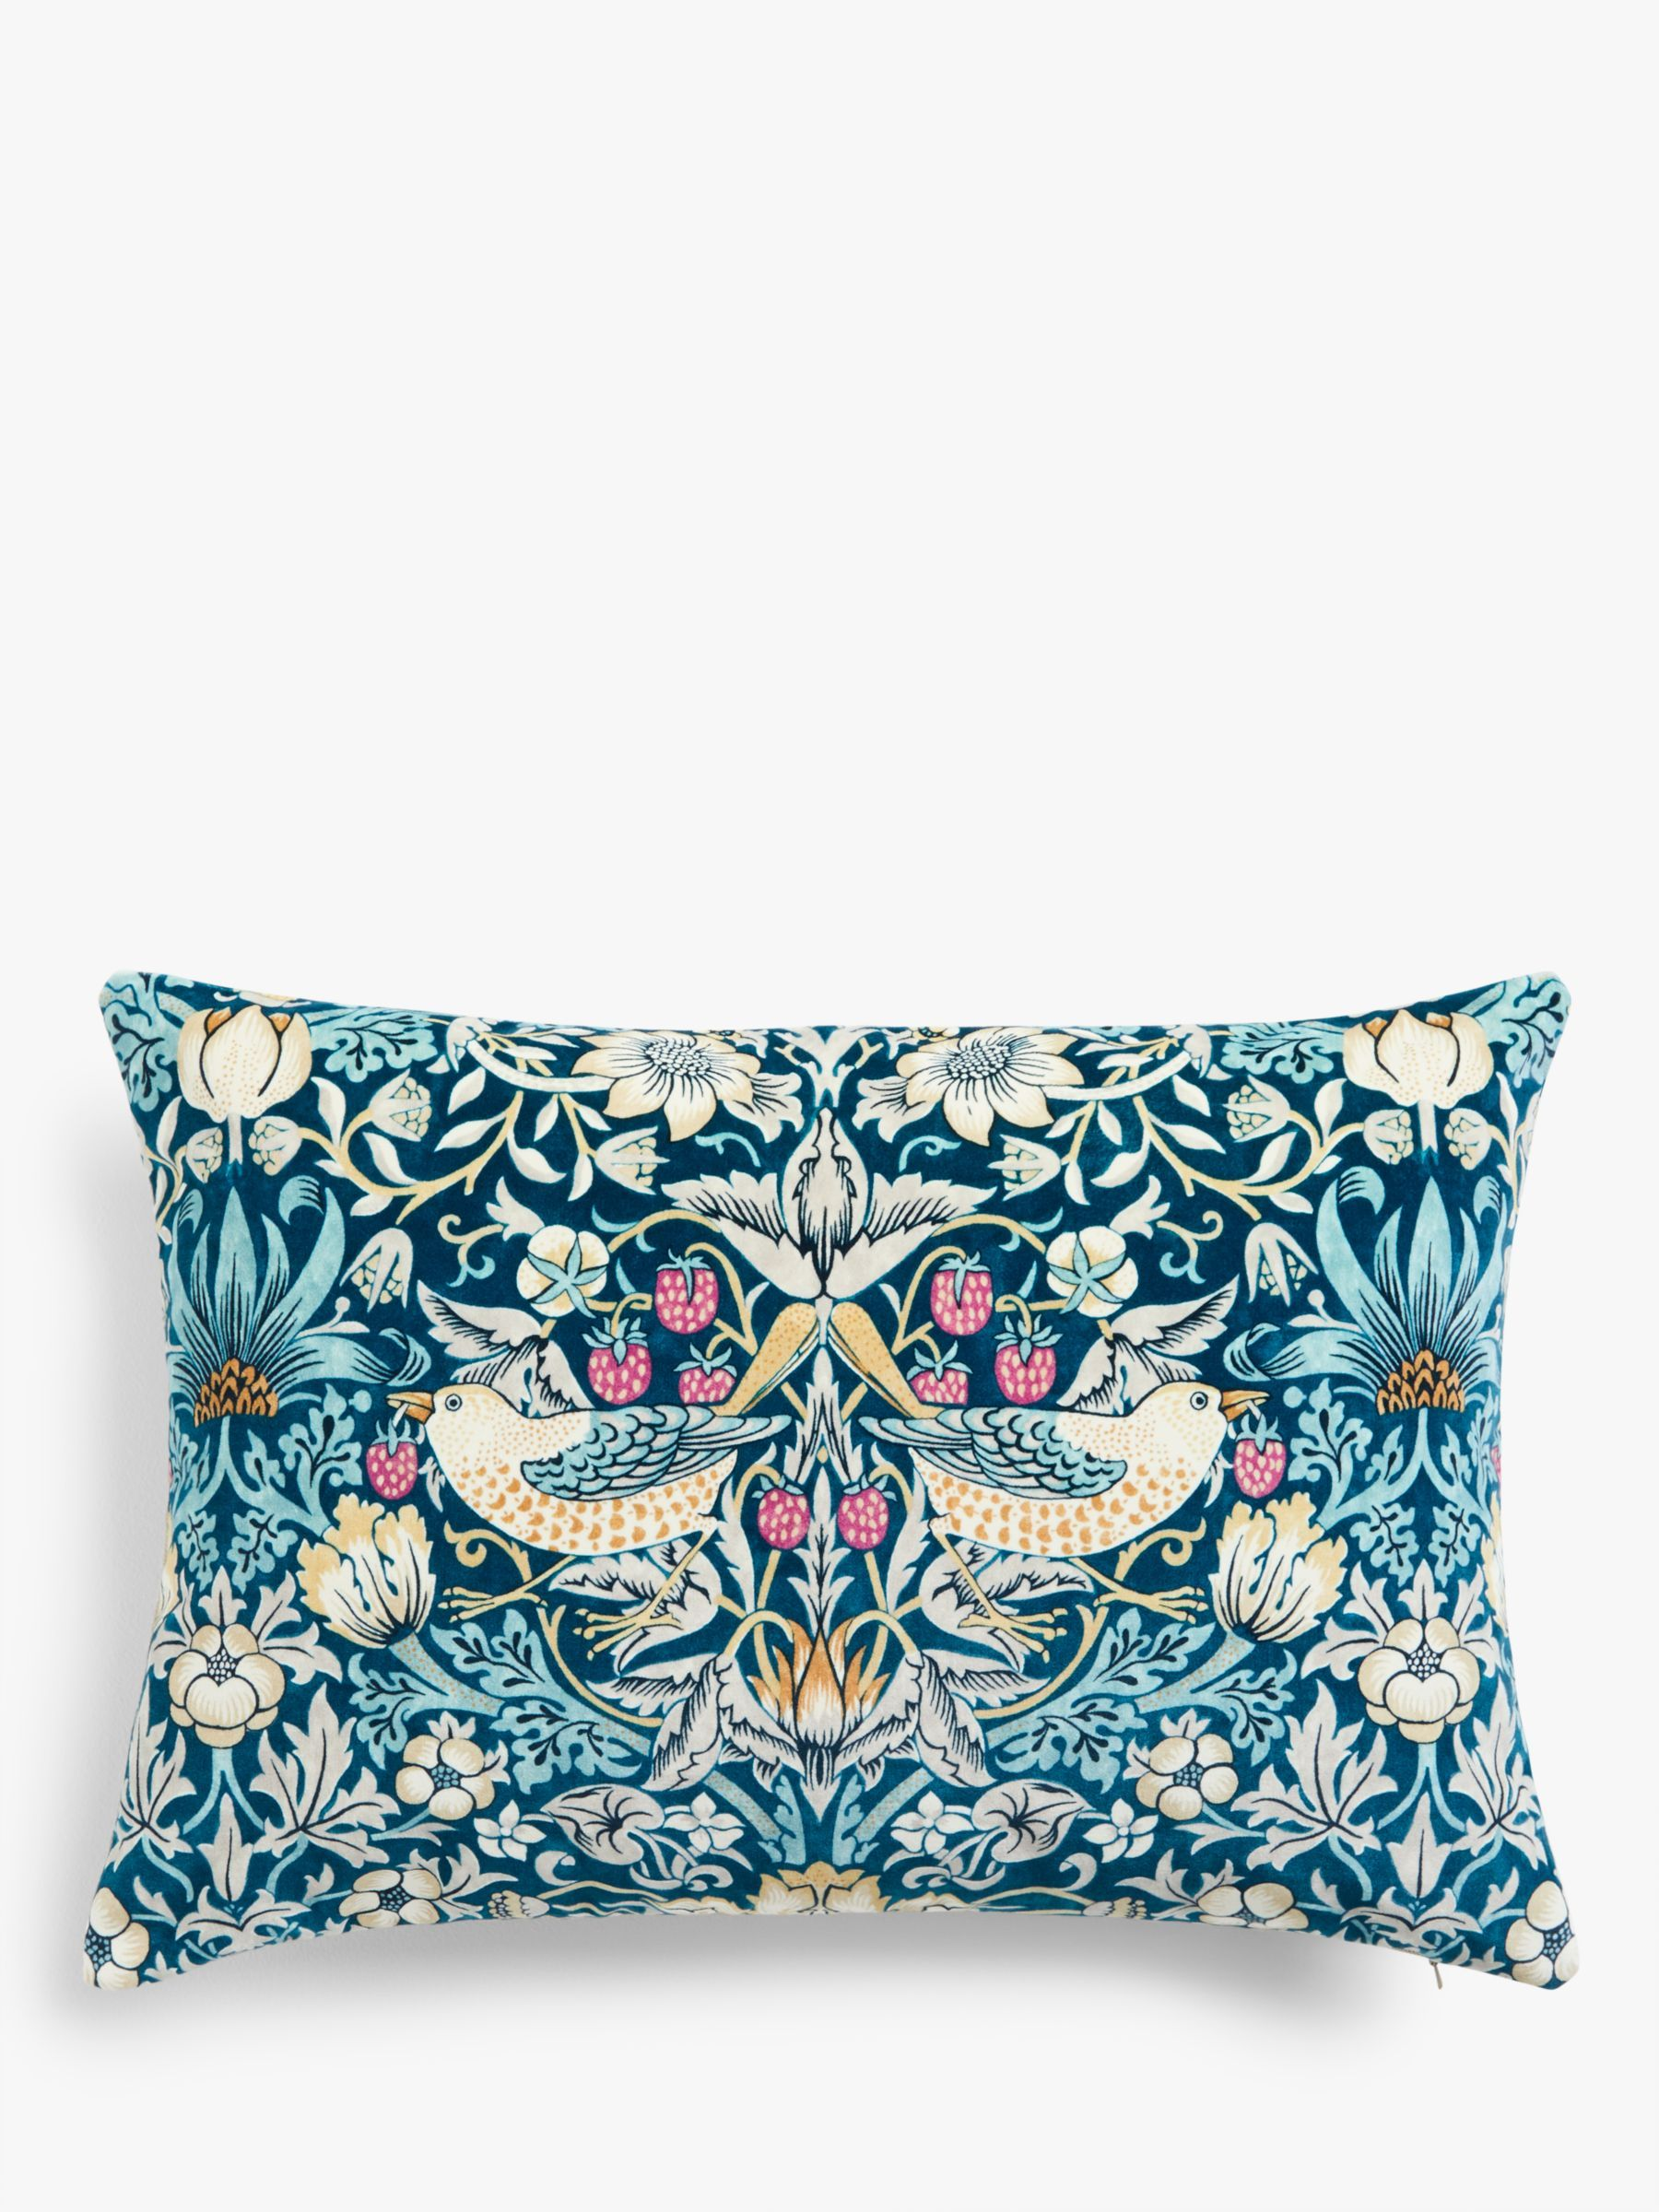 Morris & Co. Strawberry Thief Velvet Cushion, Teal